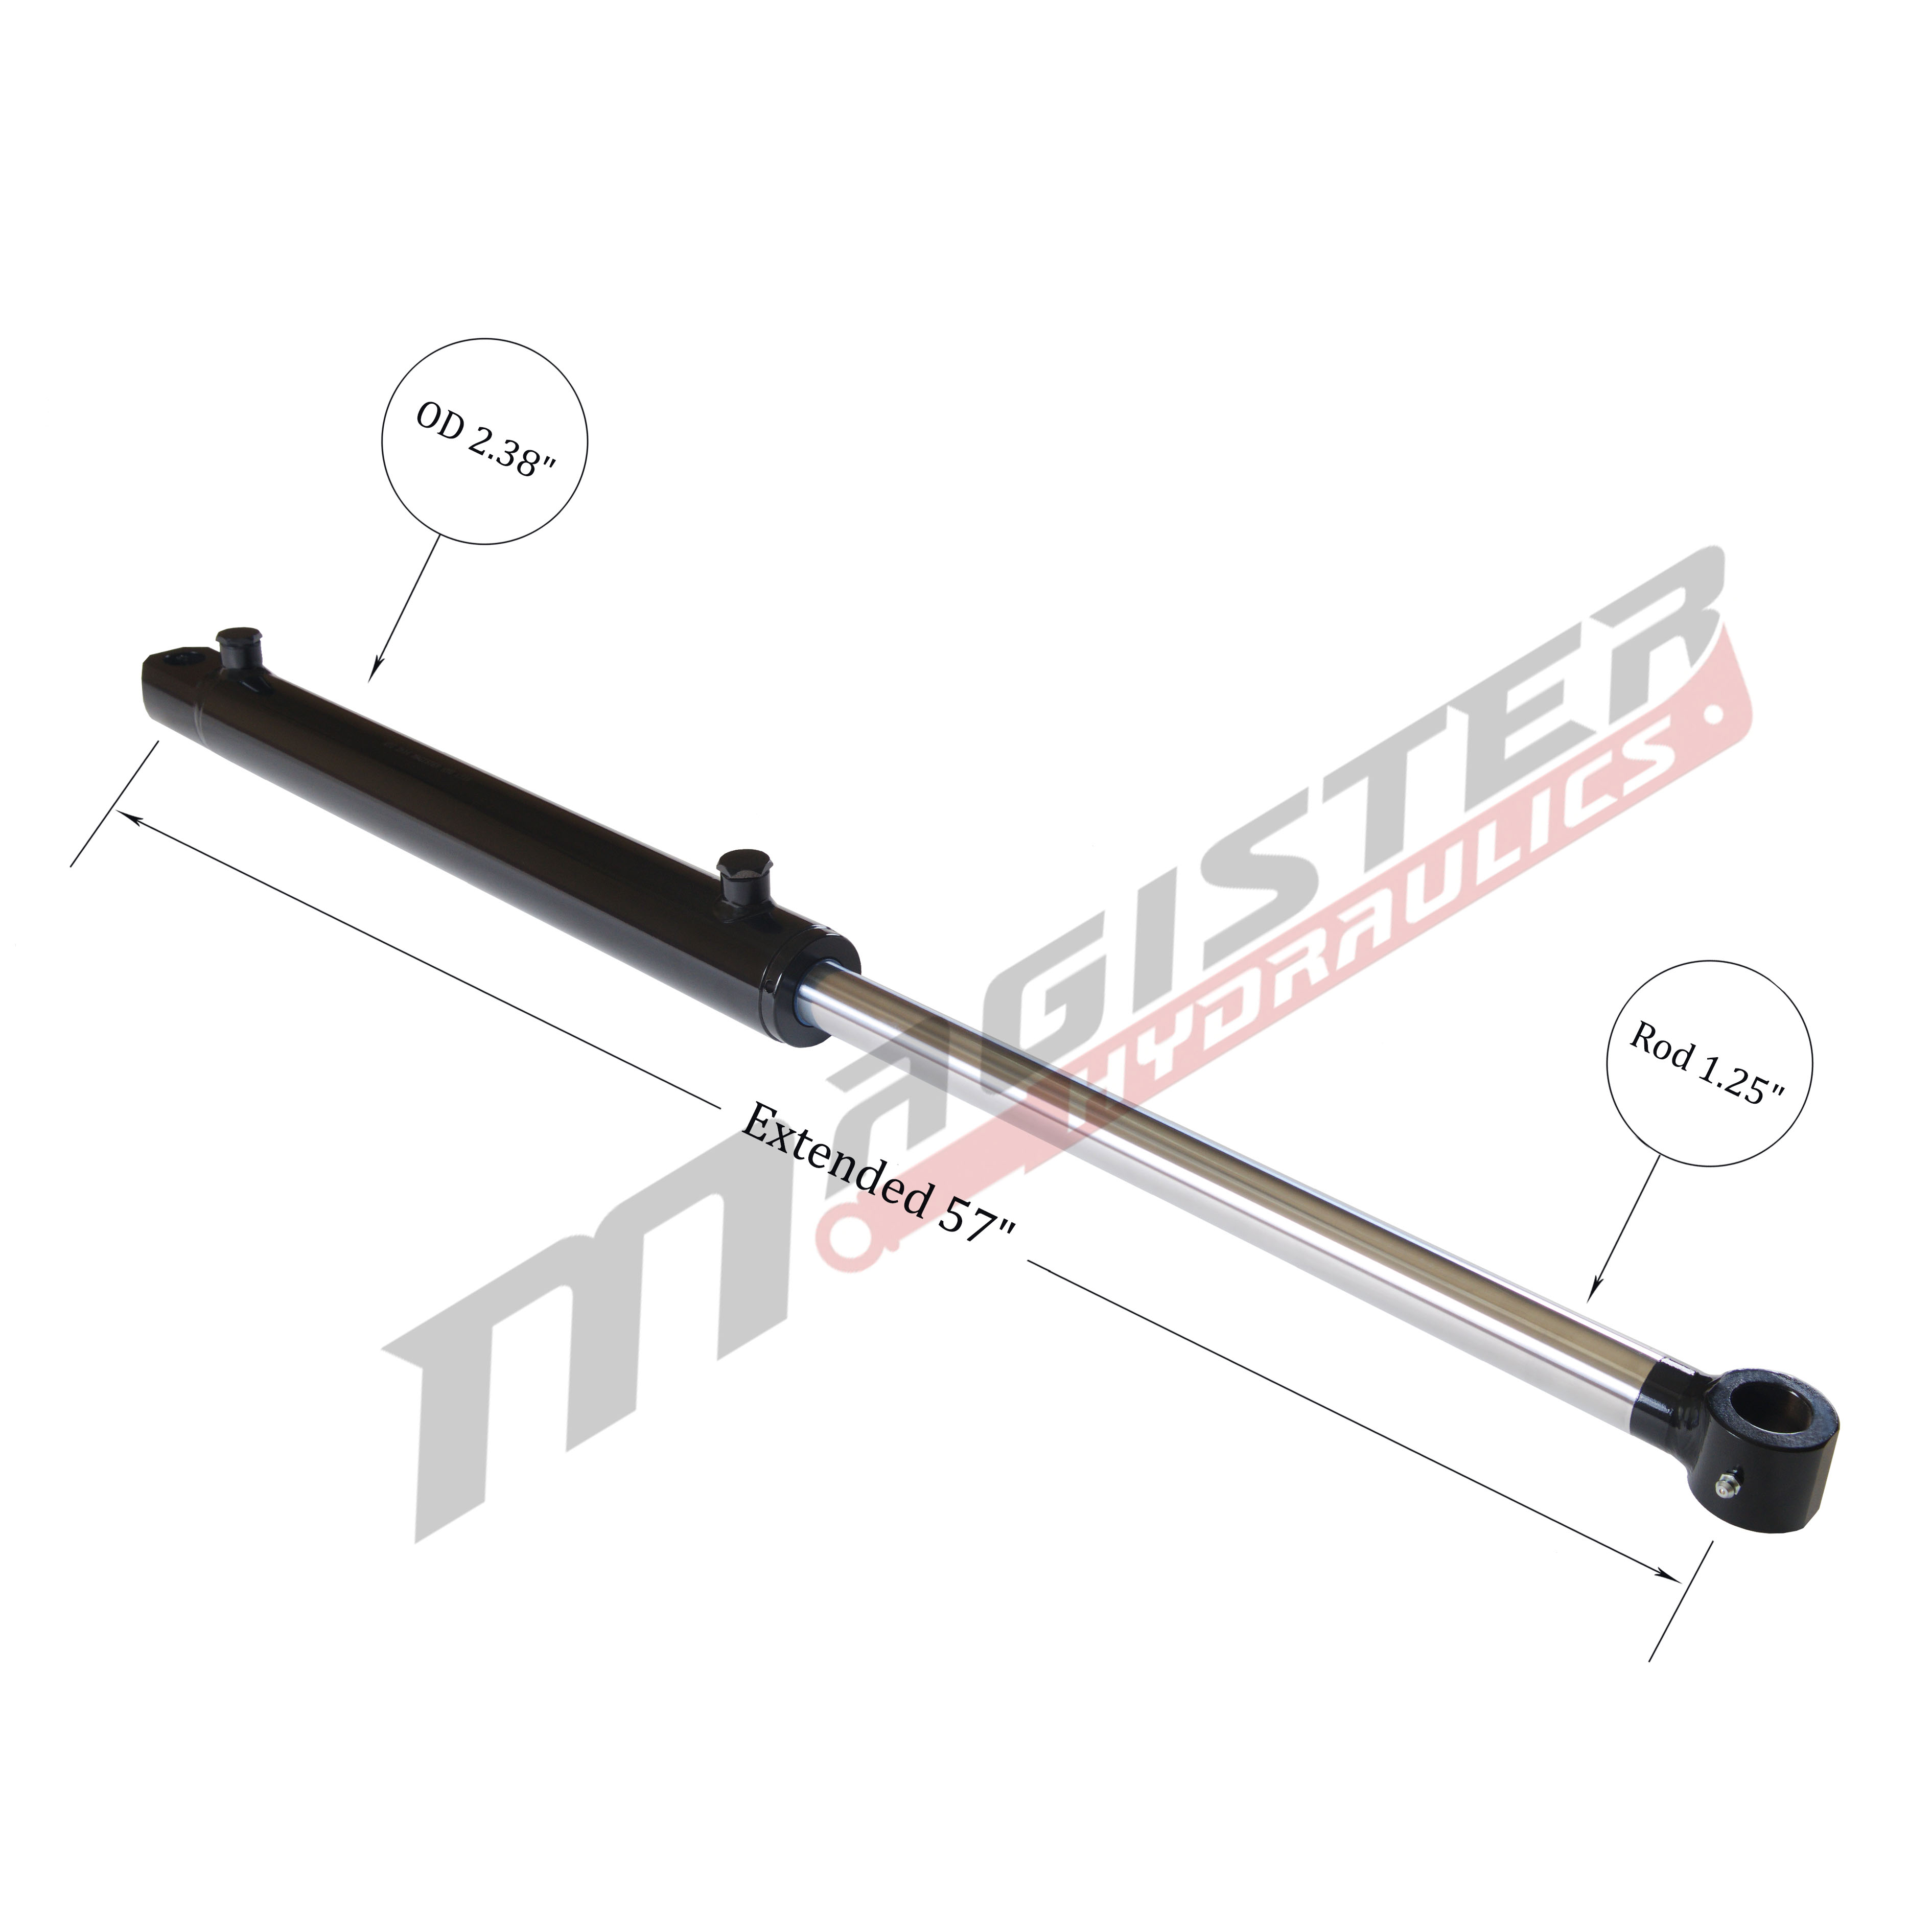 2 bore x 24 stroke hydraulic cylinder, welded tang double acting cylinder | Magister Hydraulics